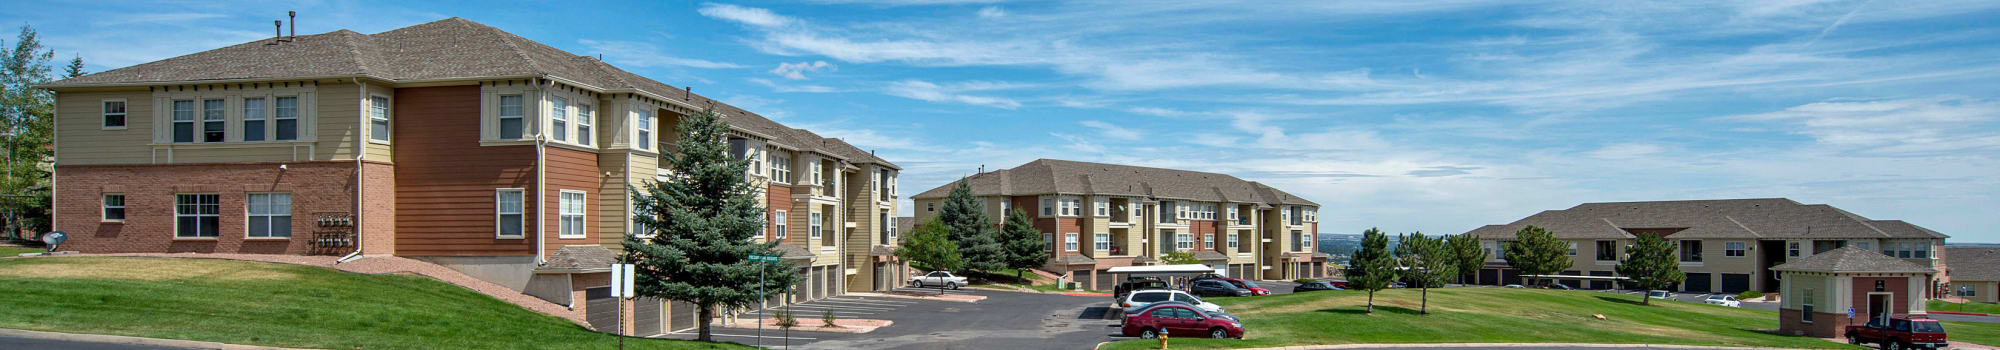 See the Retreat at Cheyenne Mountain Apartments floor plans